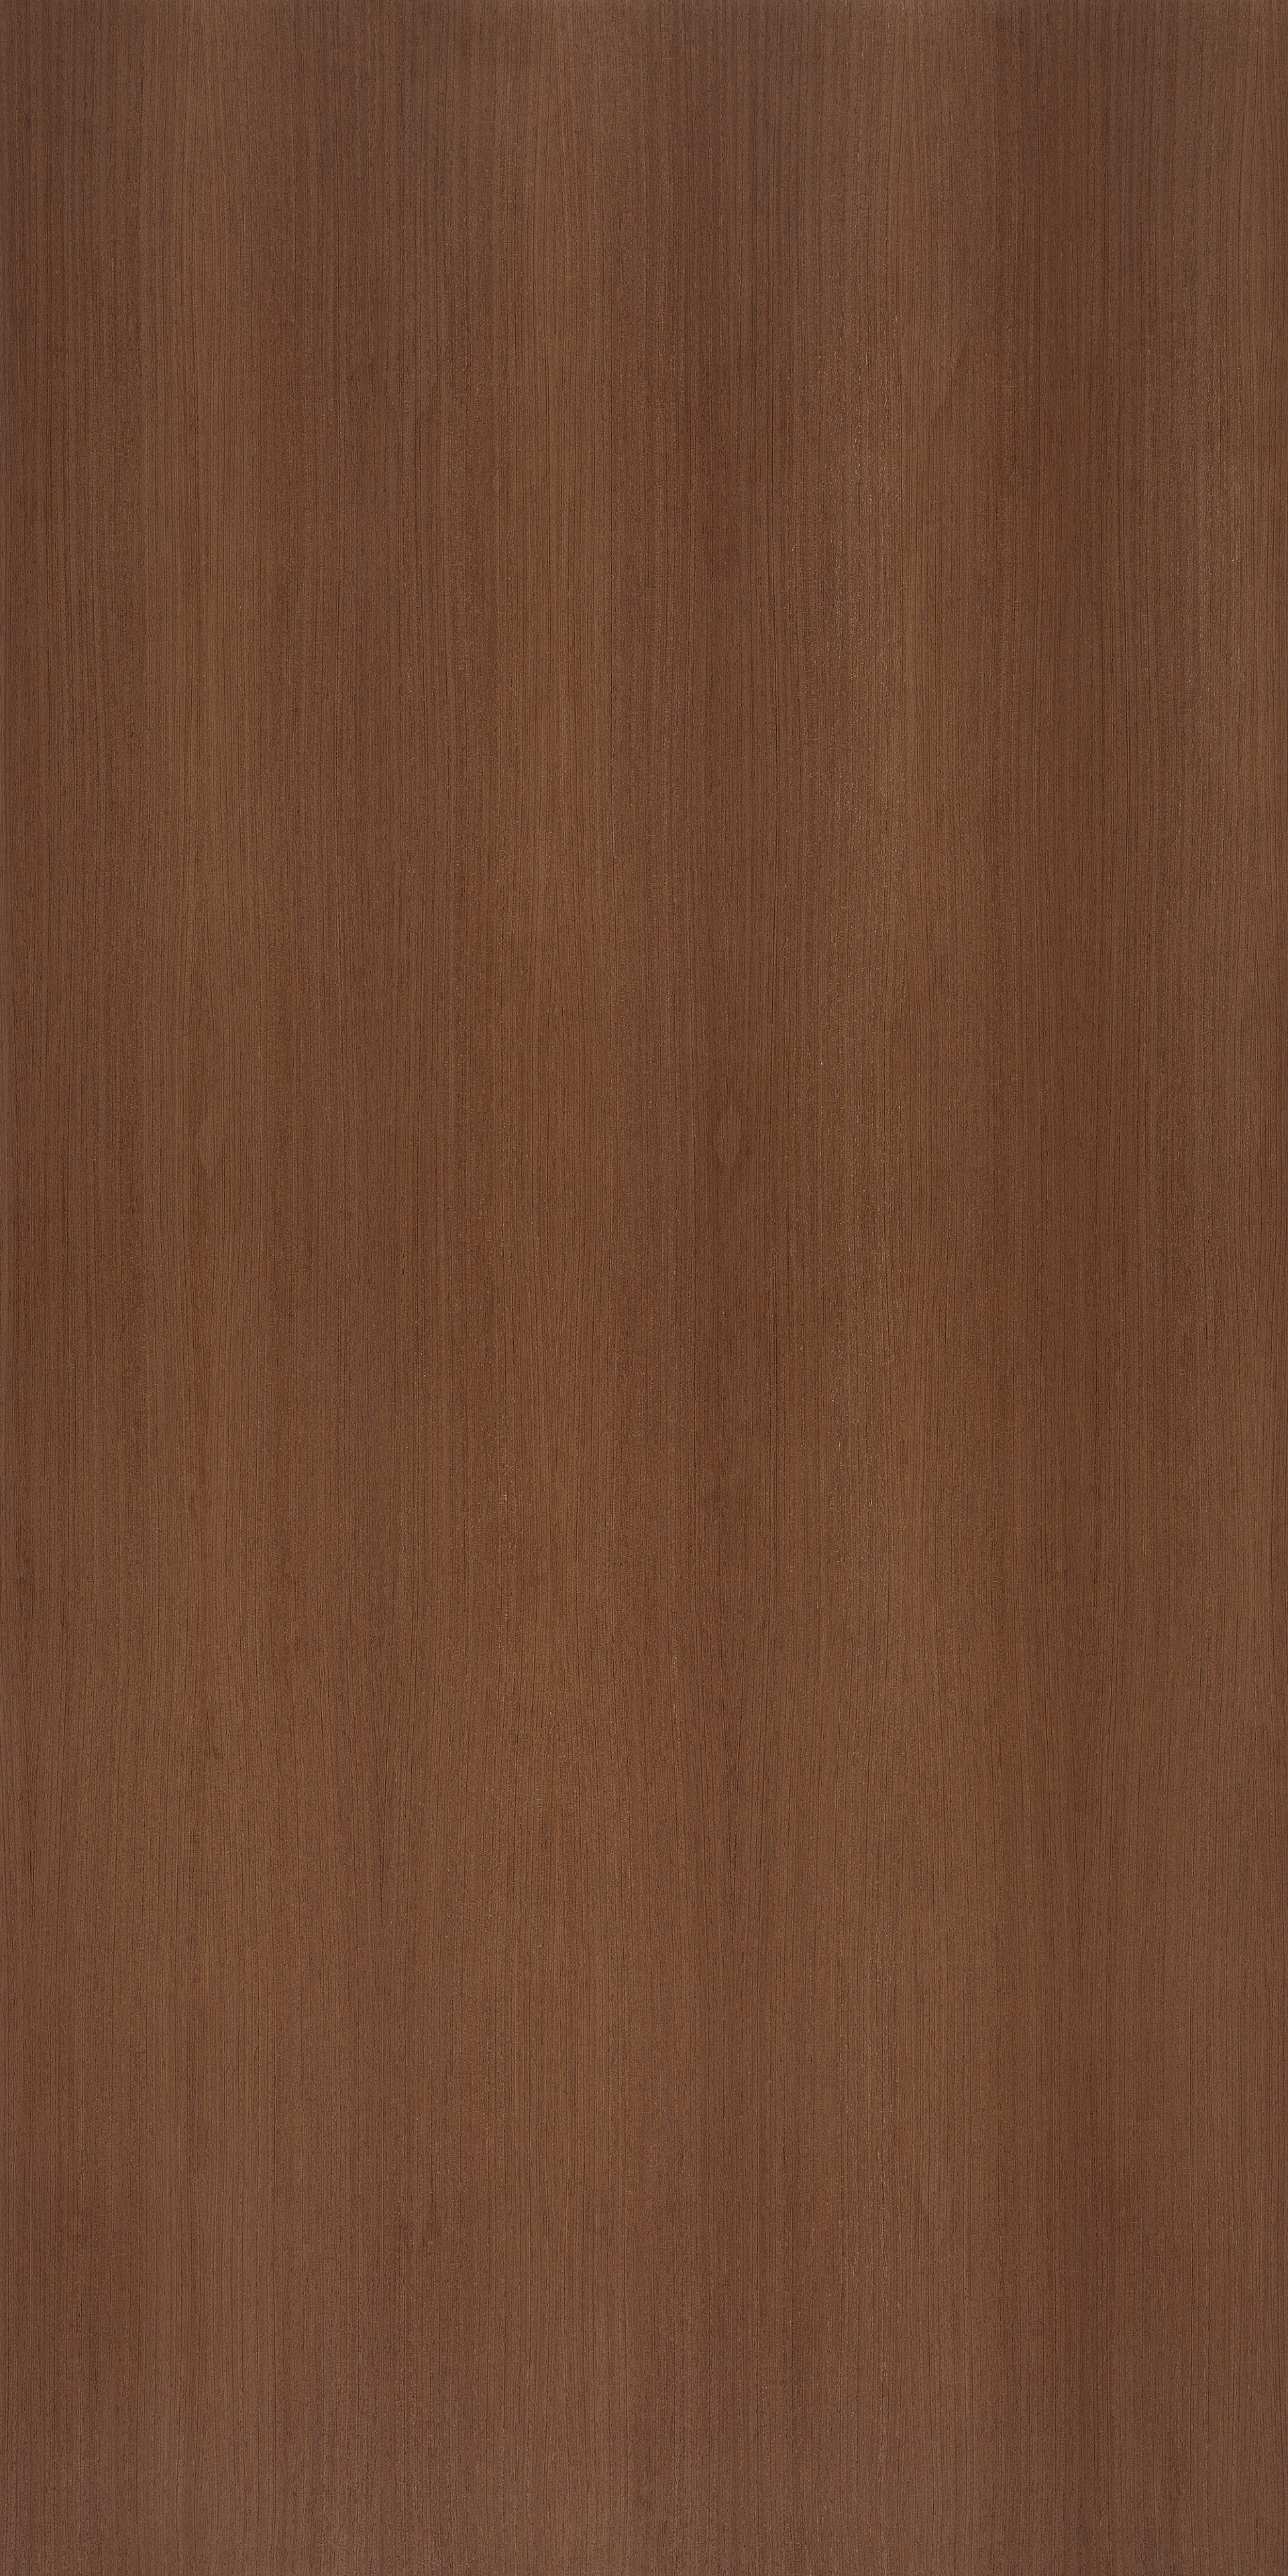 wenge quartercut 2440x1220